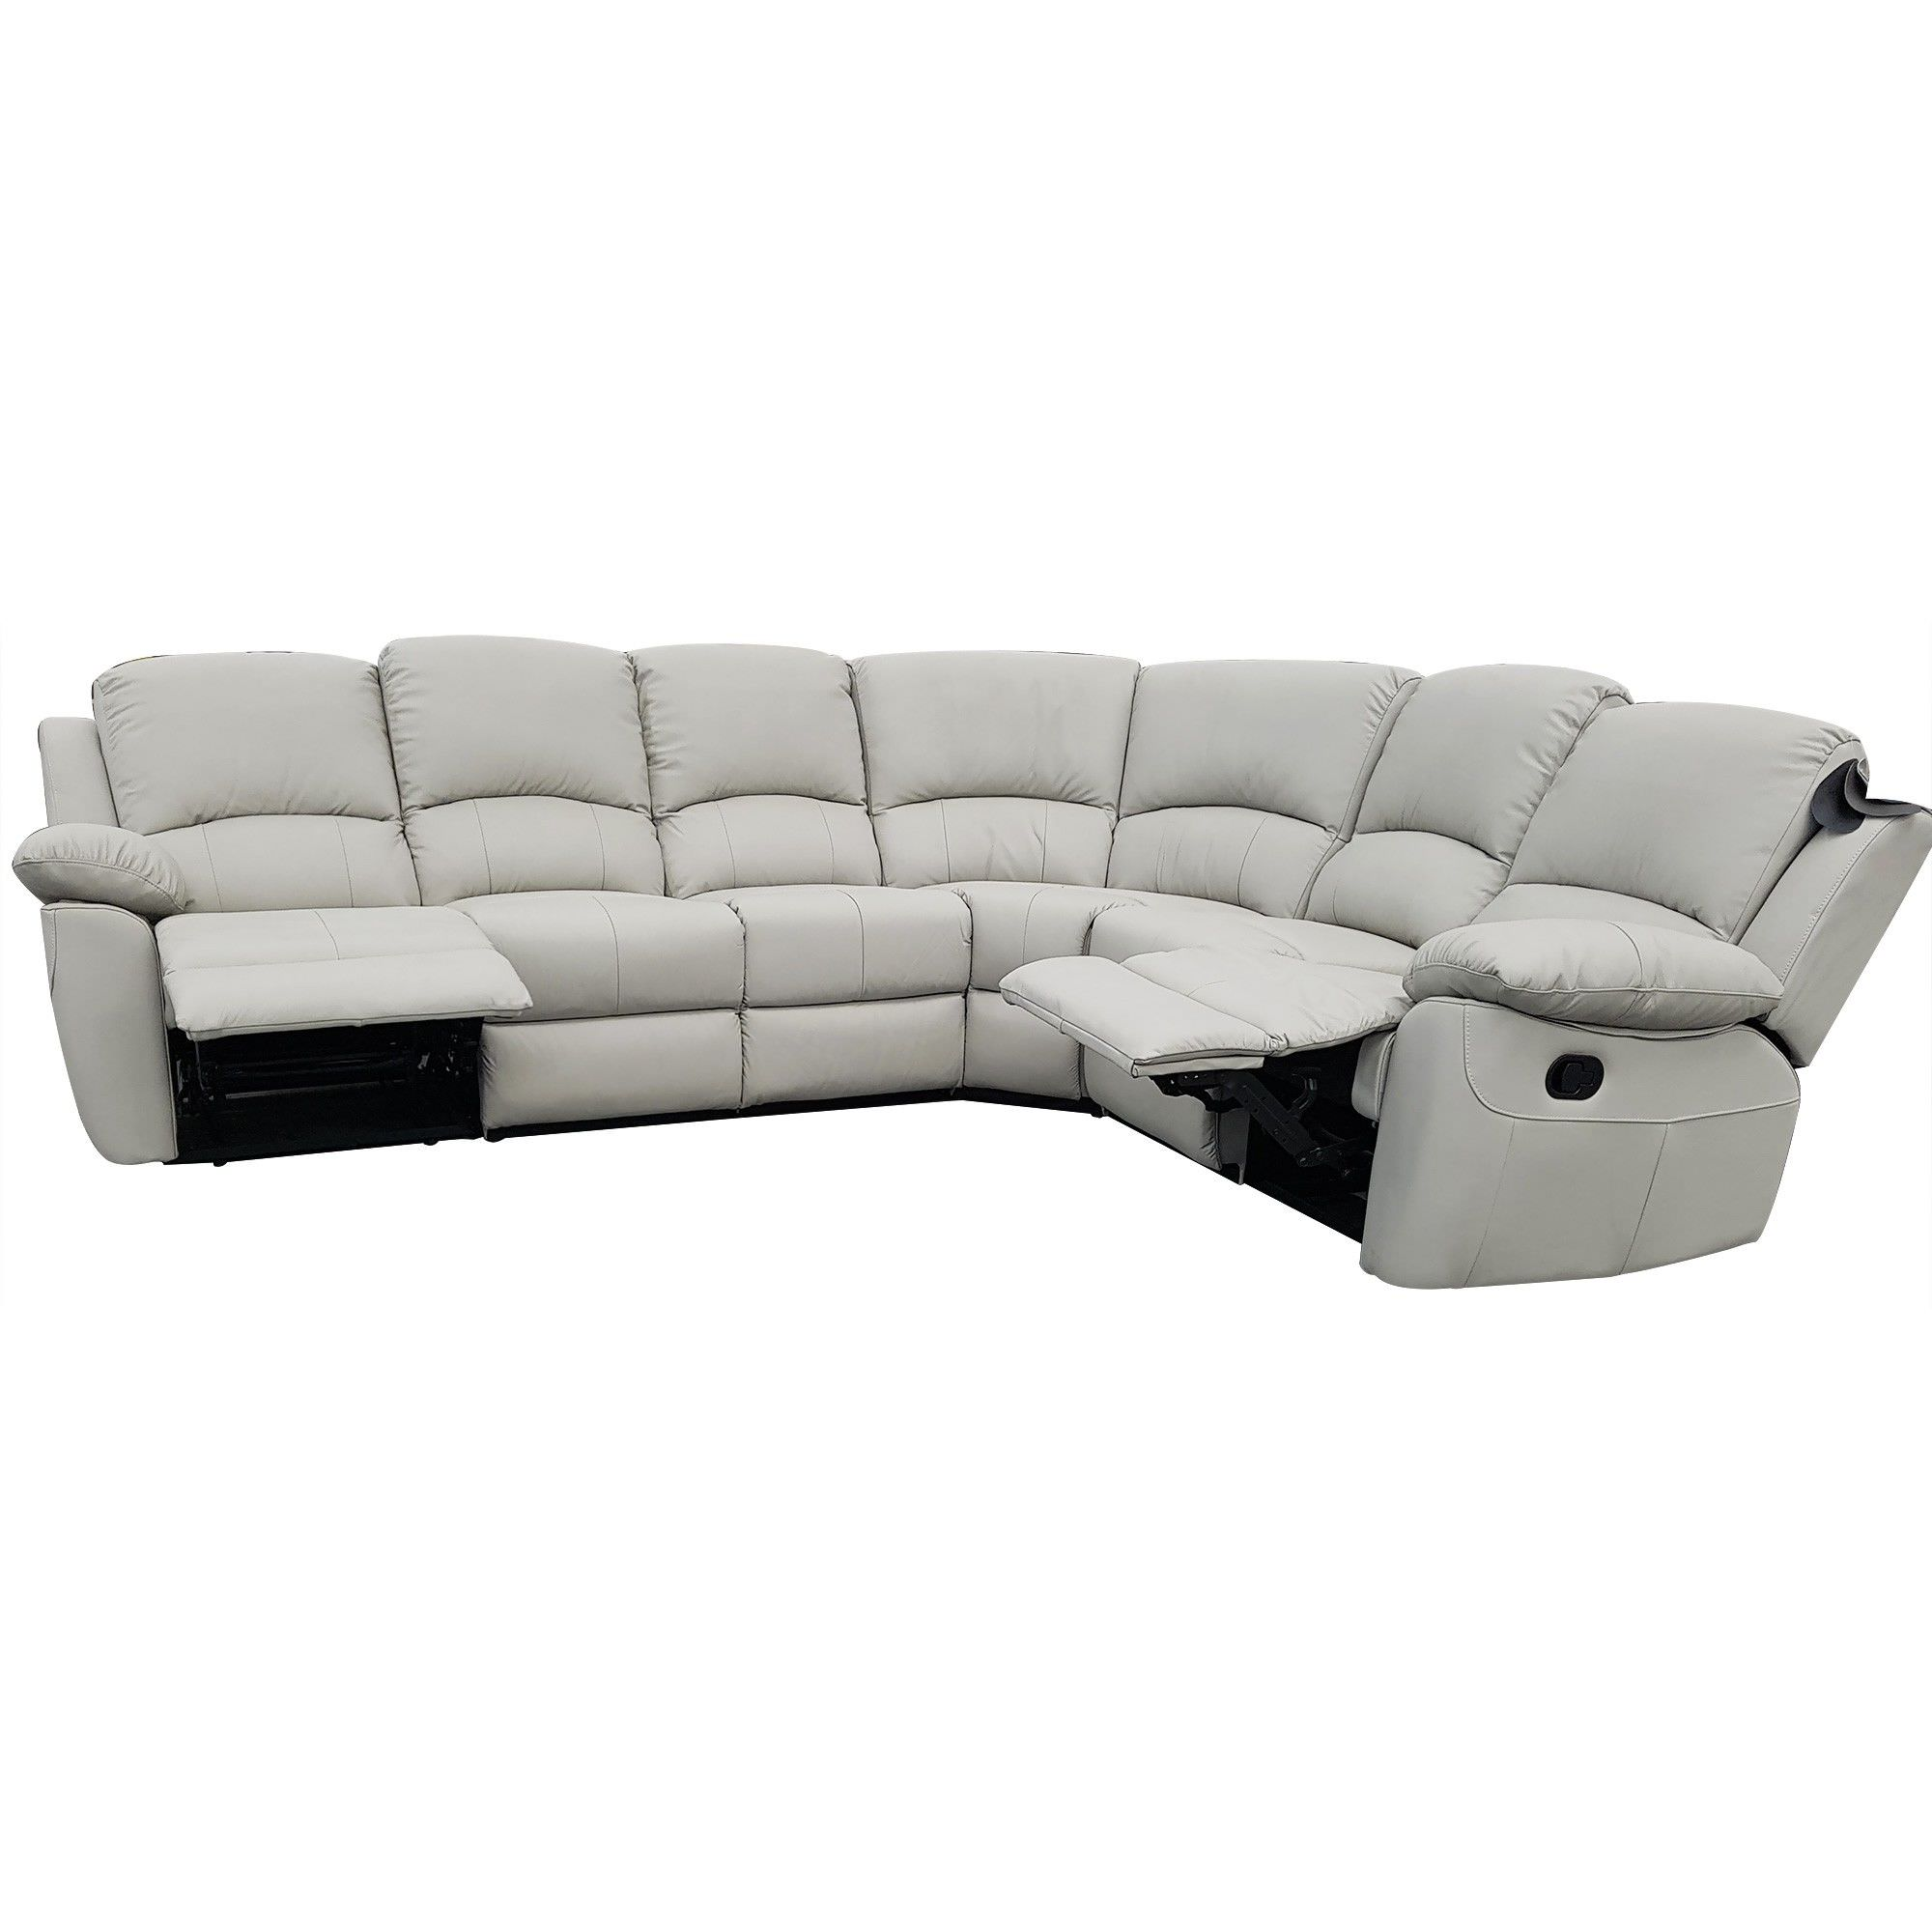 Connie S Corner: Connie Leather 5 Seater Corner Recliner Sofa, Mist